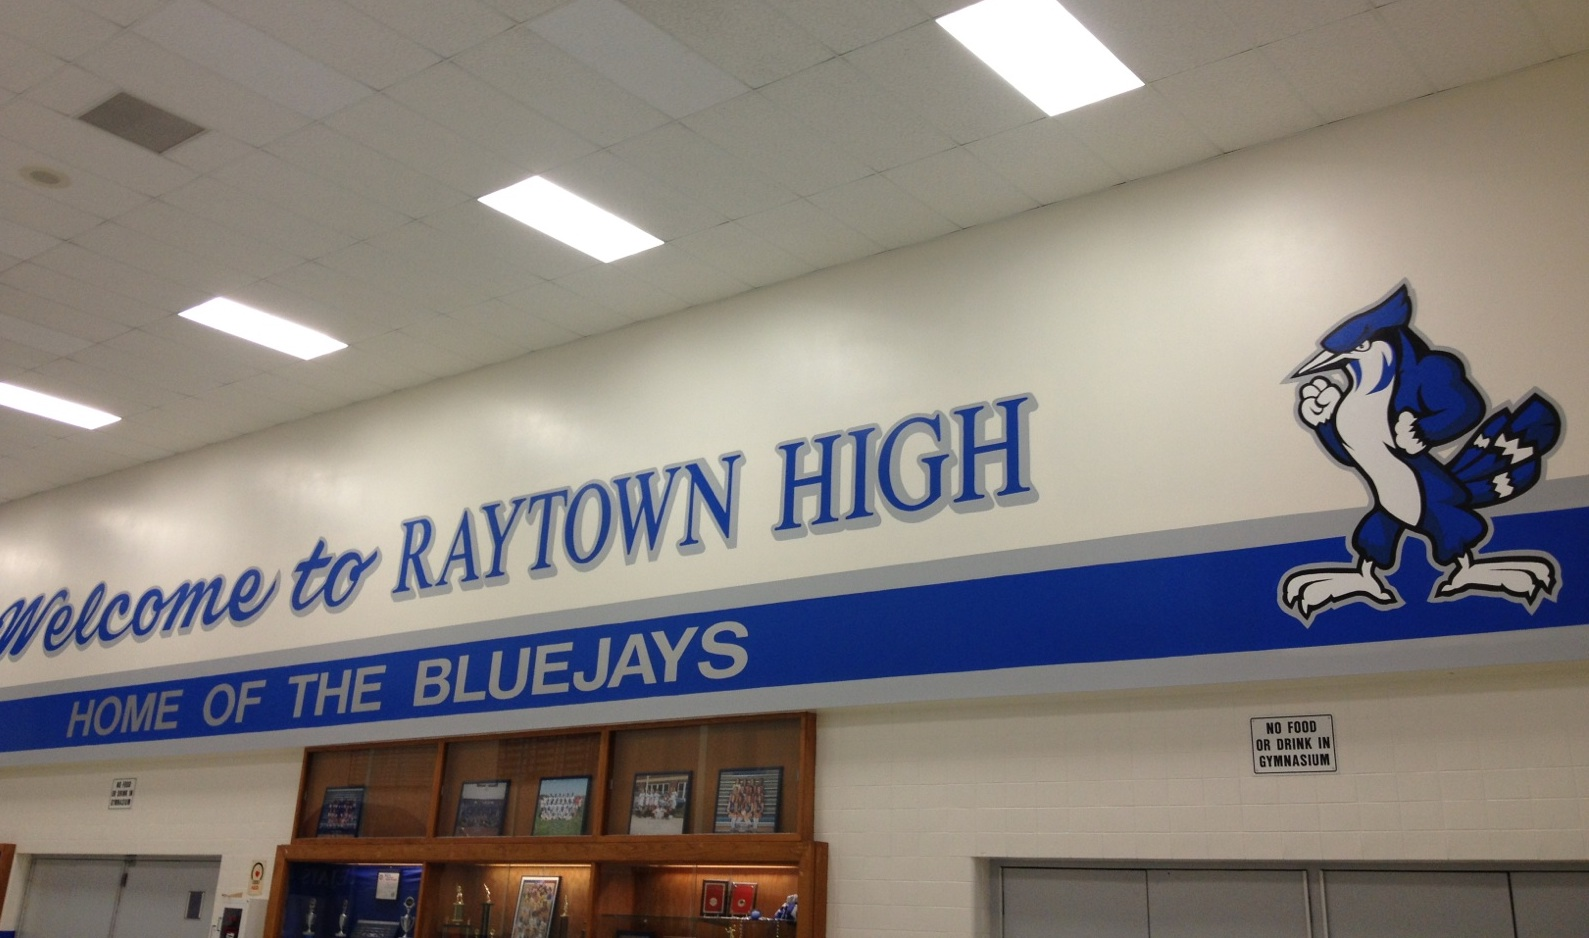 Raytown High